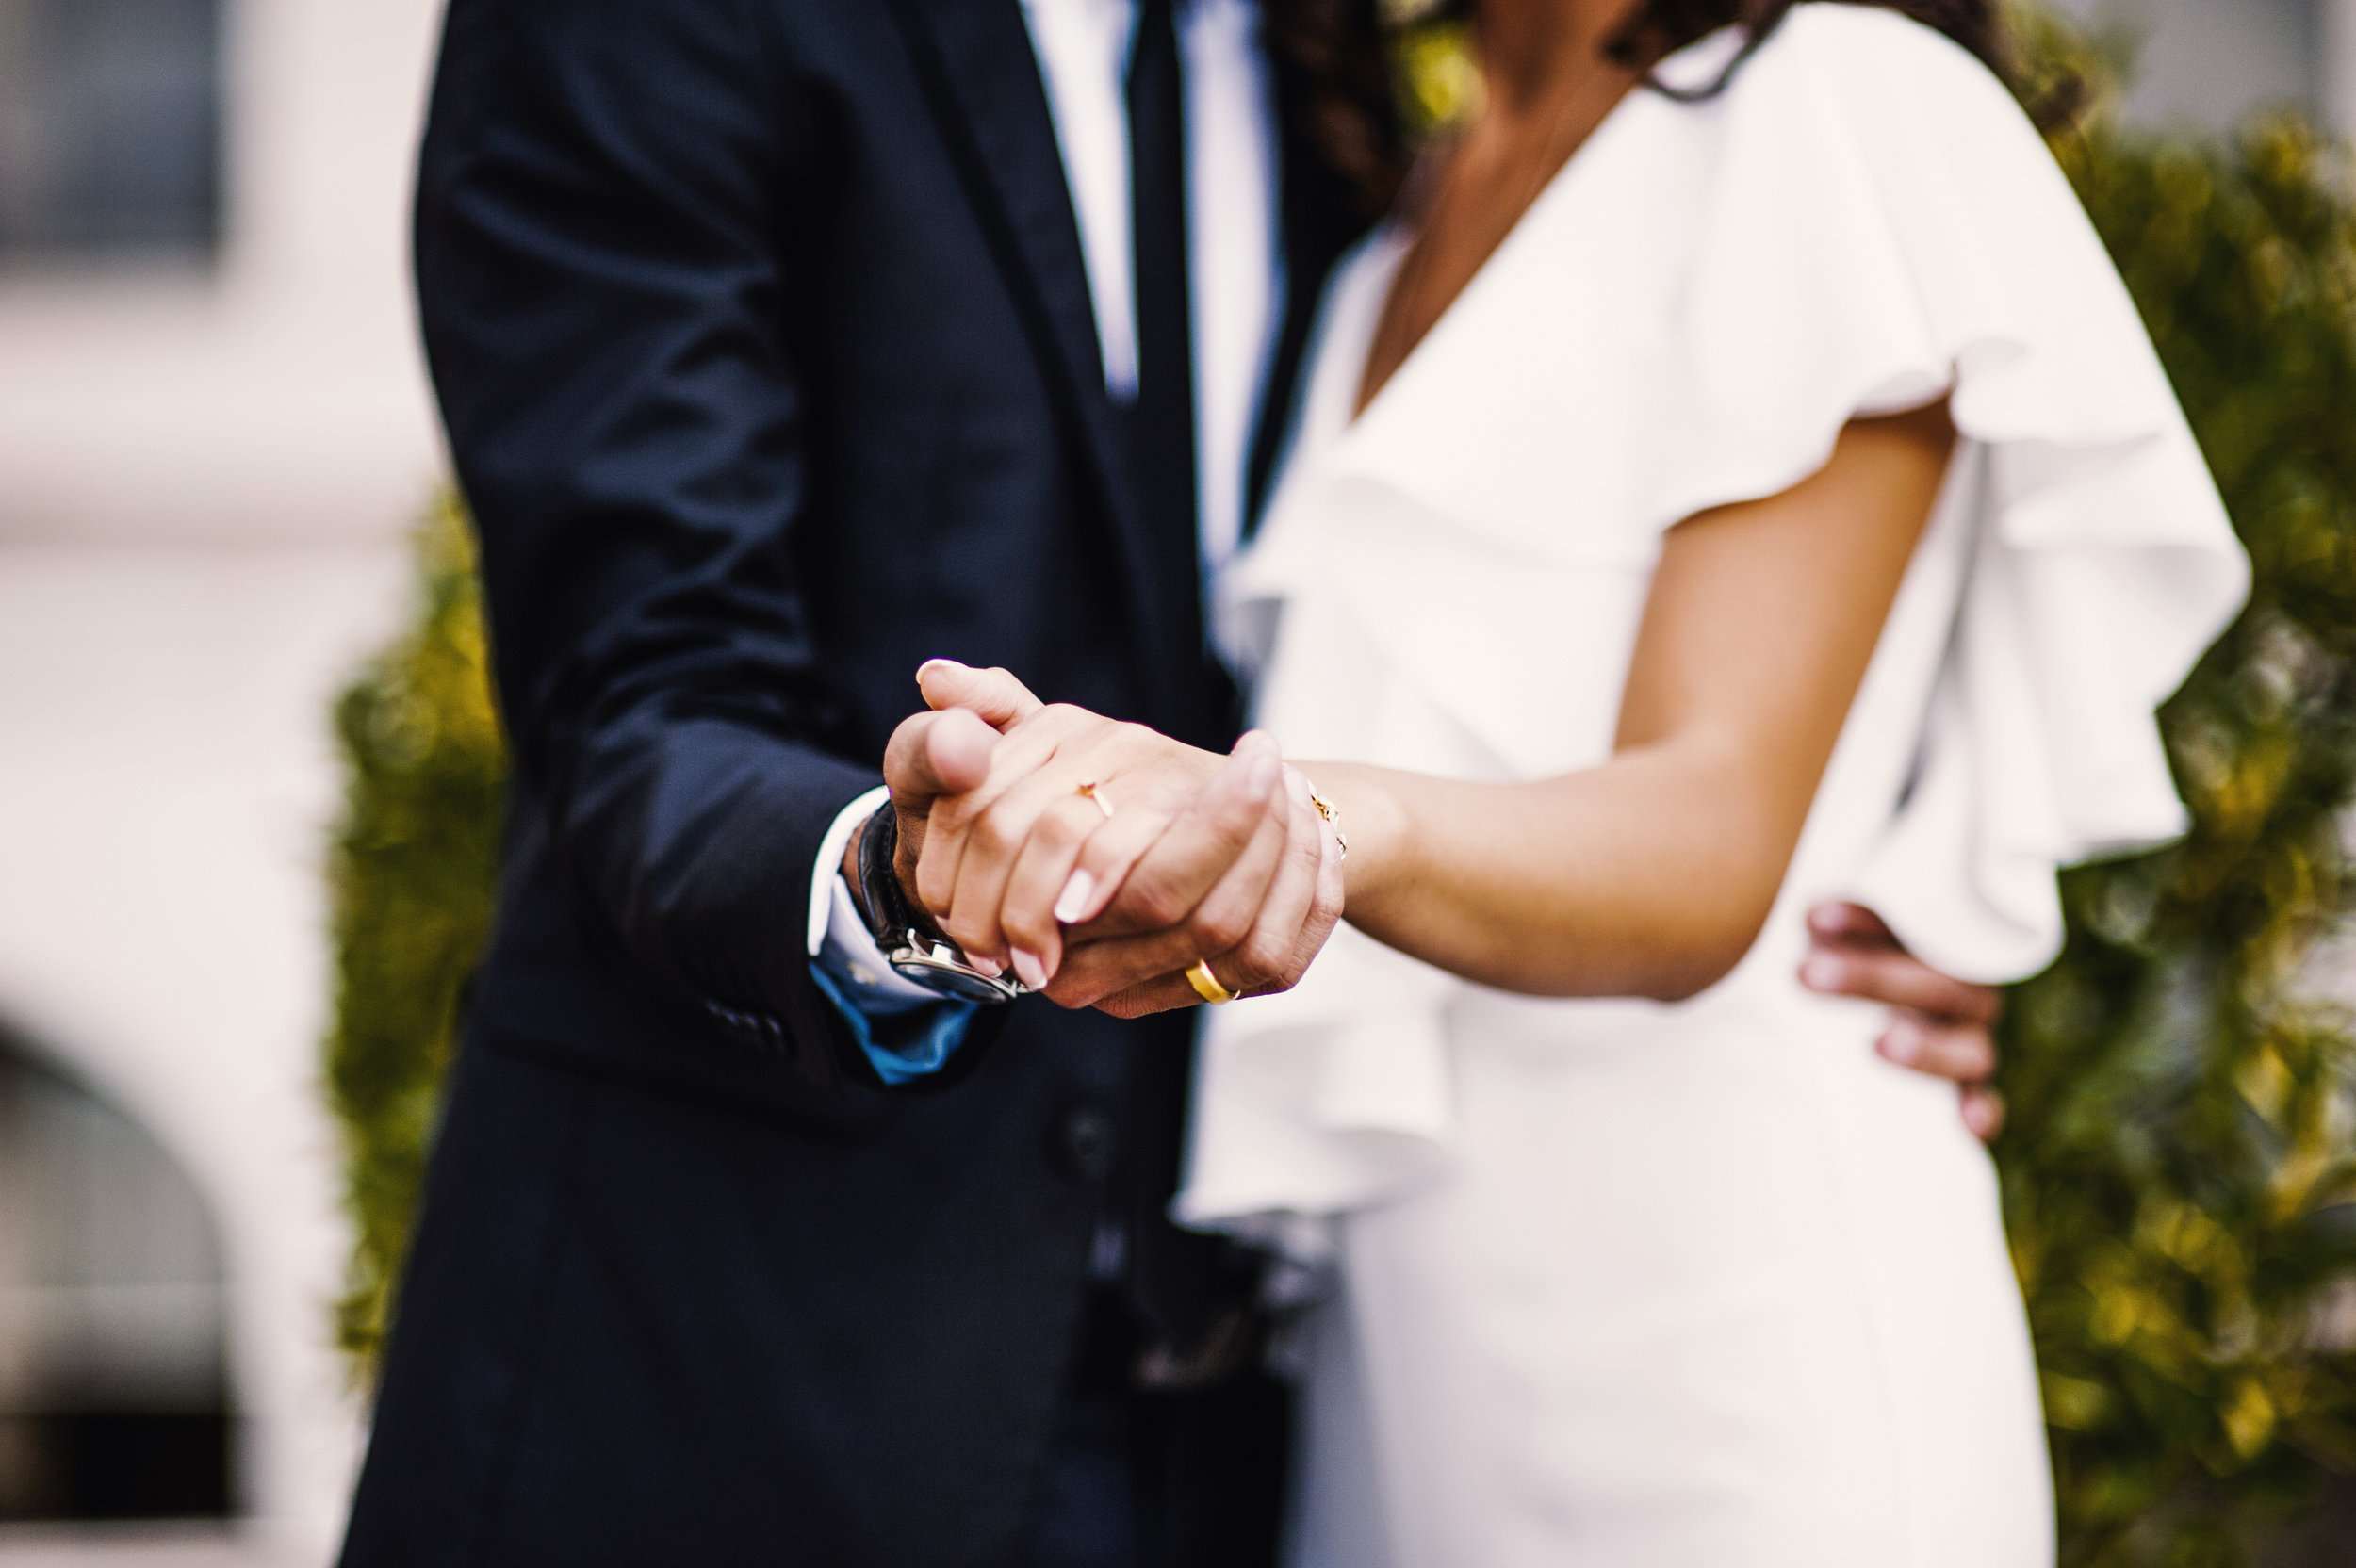 Chicago premarital counseling